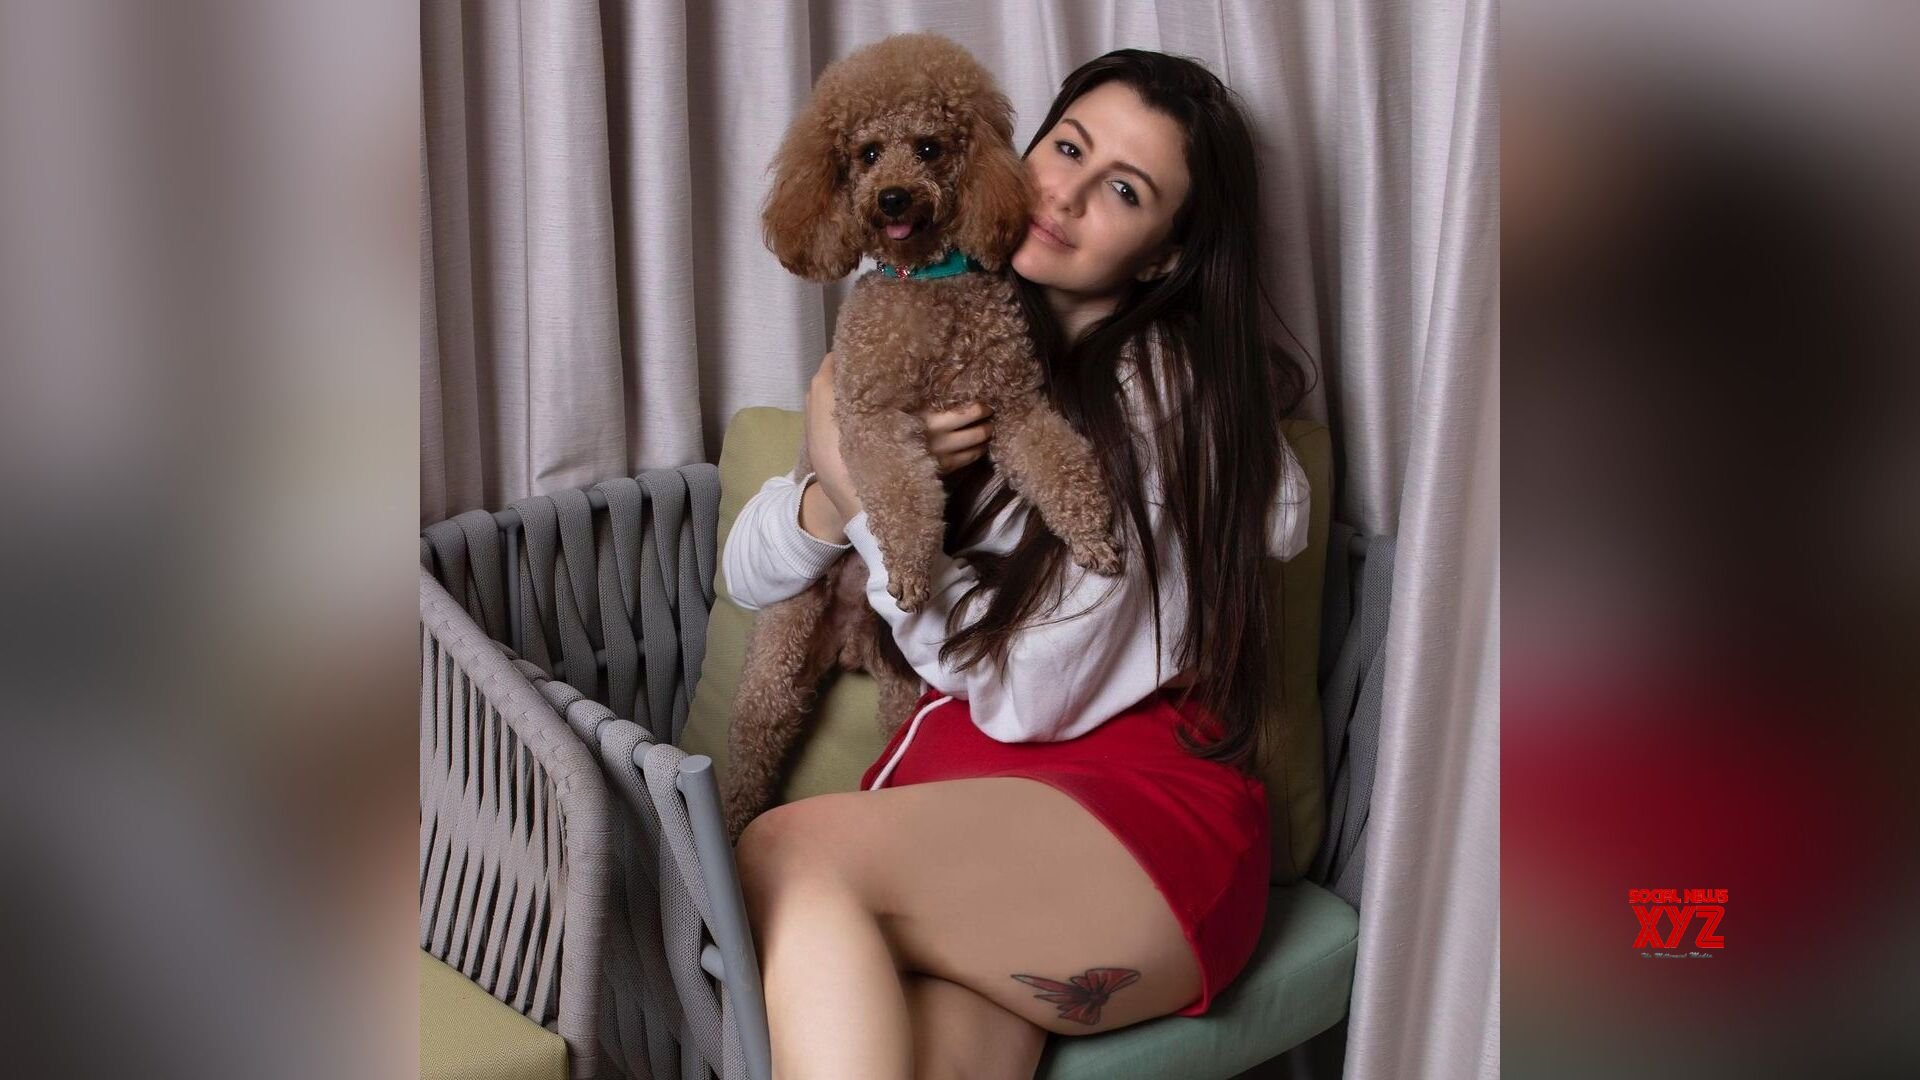 Giorgia Andriani looks hot in mini black hot shortsas she was spotted around in the city with her dog Hugo